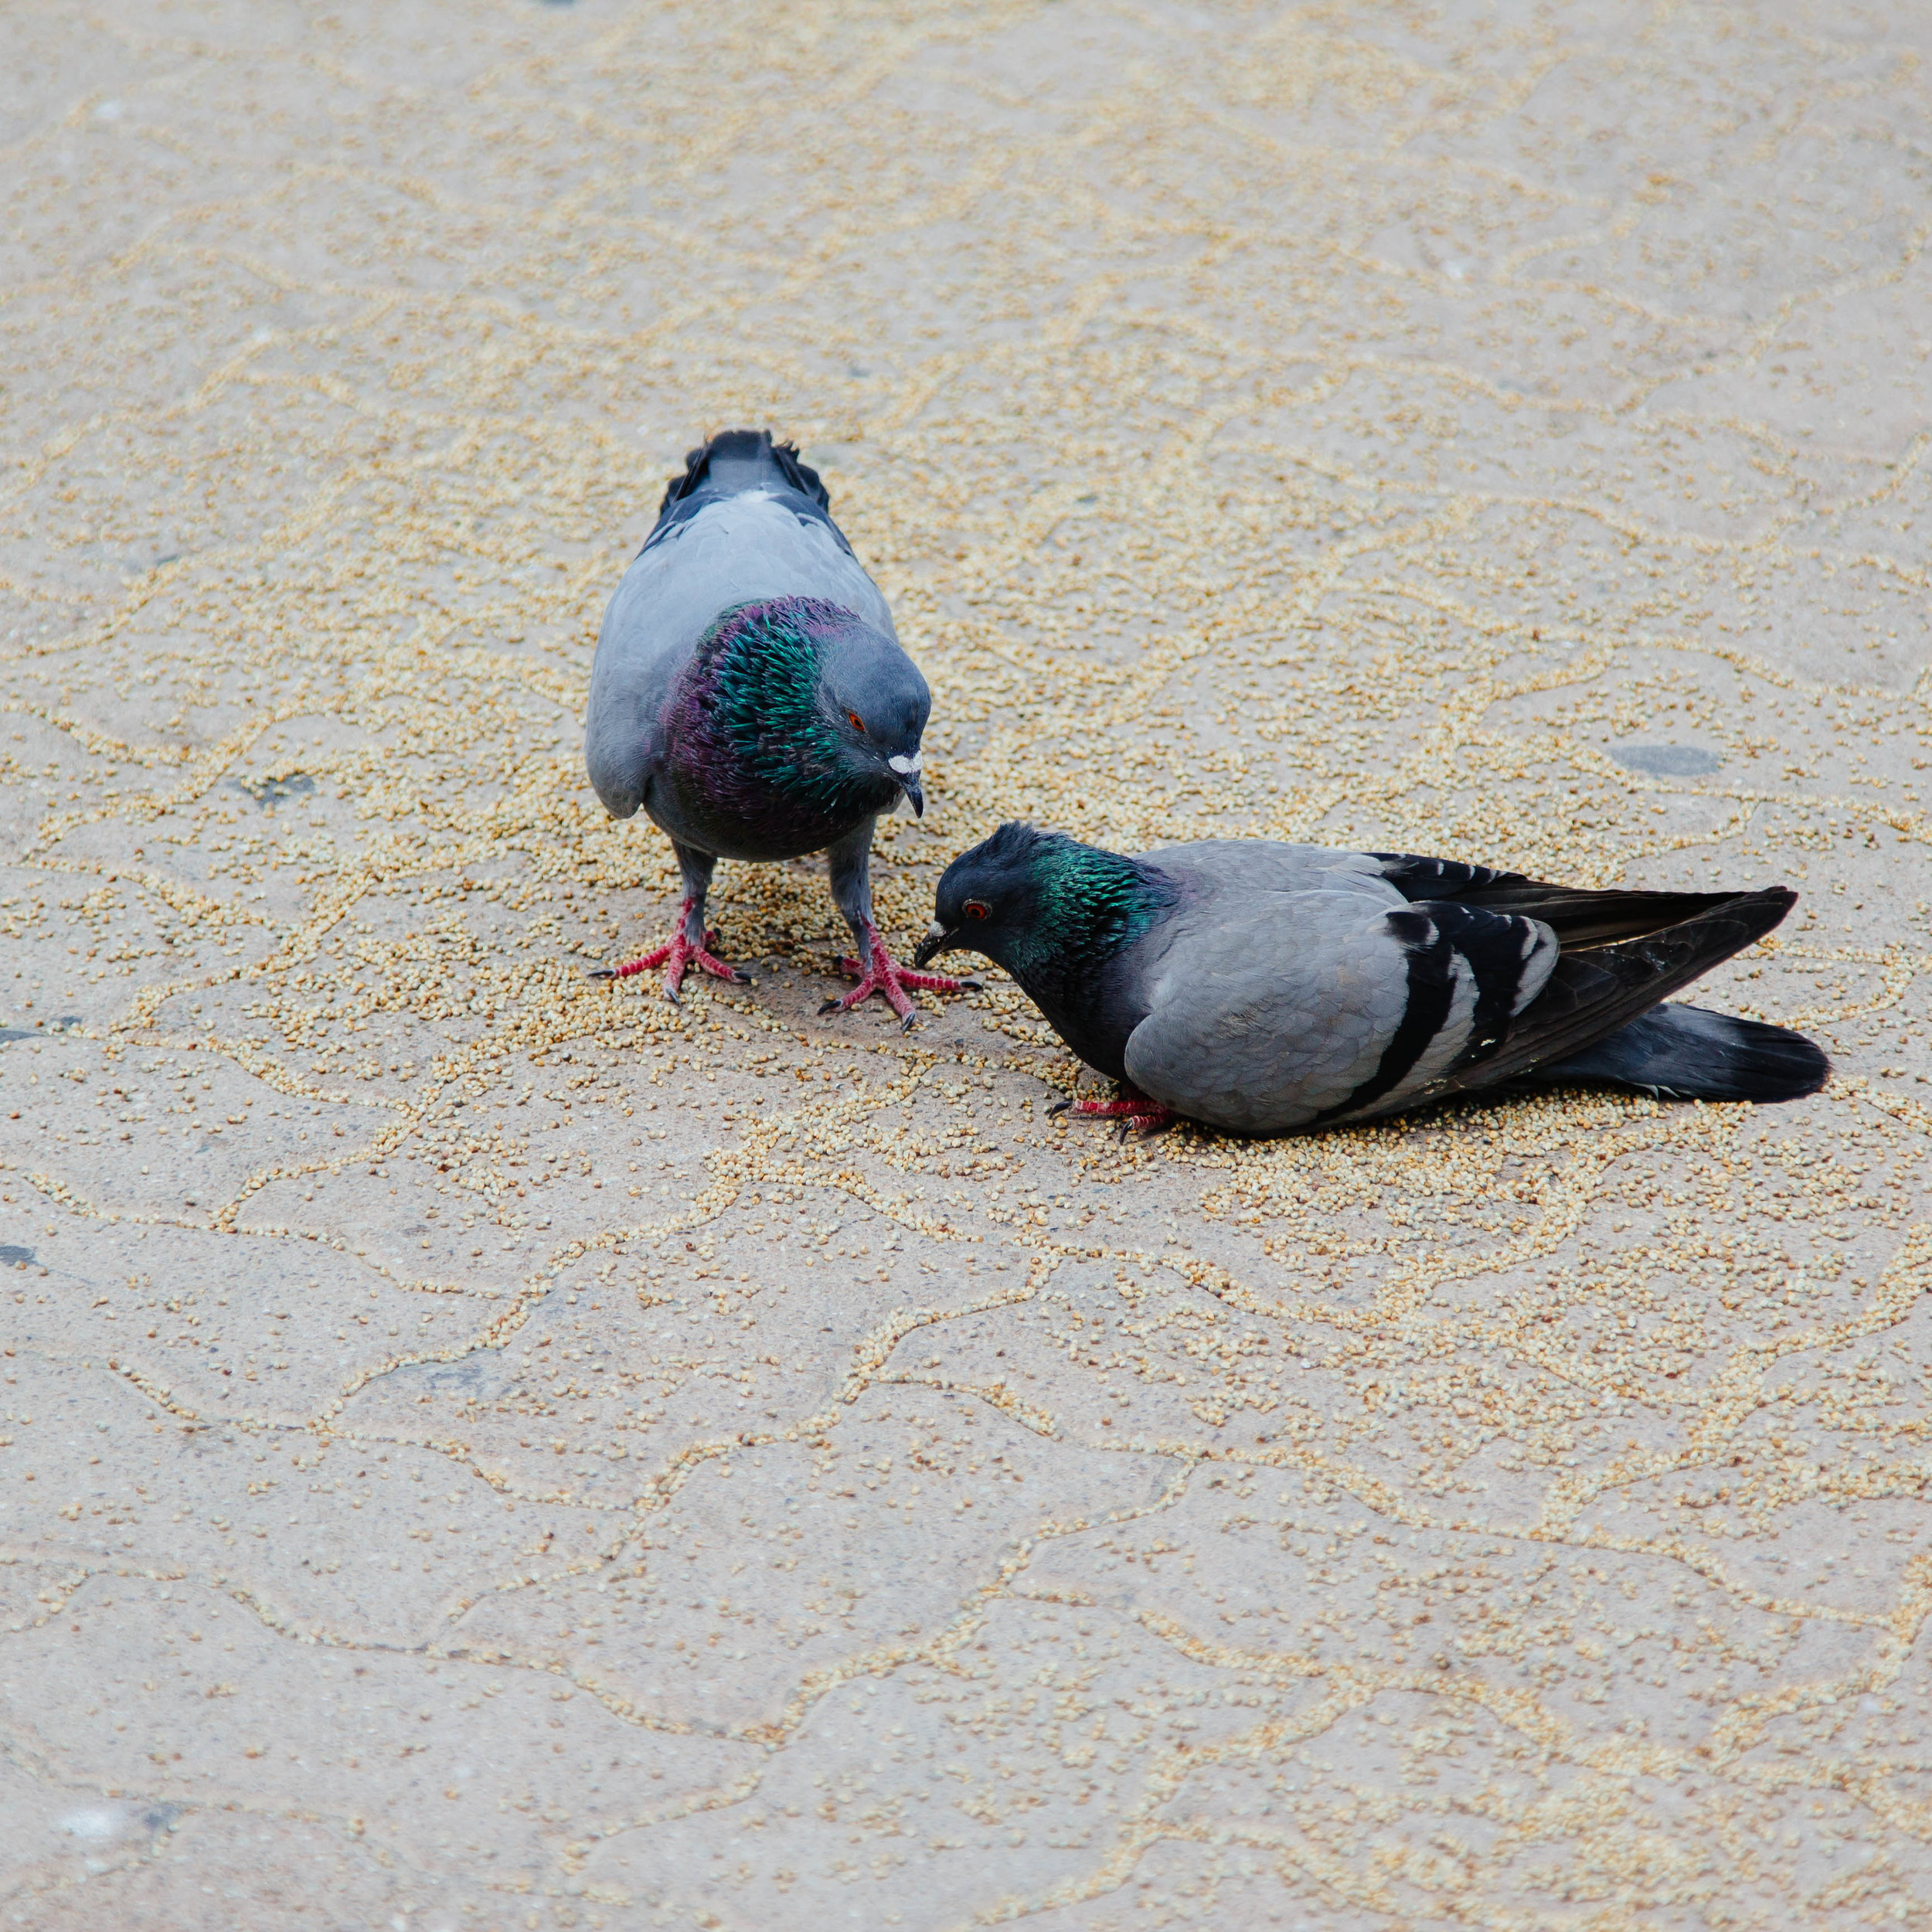 UAE Pigeons: Much skinnier and much more loved than the North American variety.